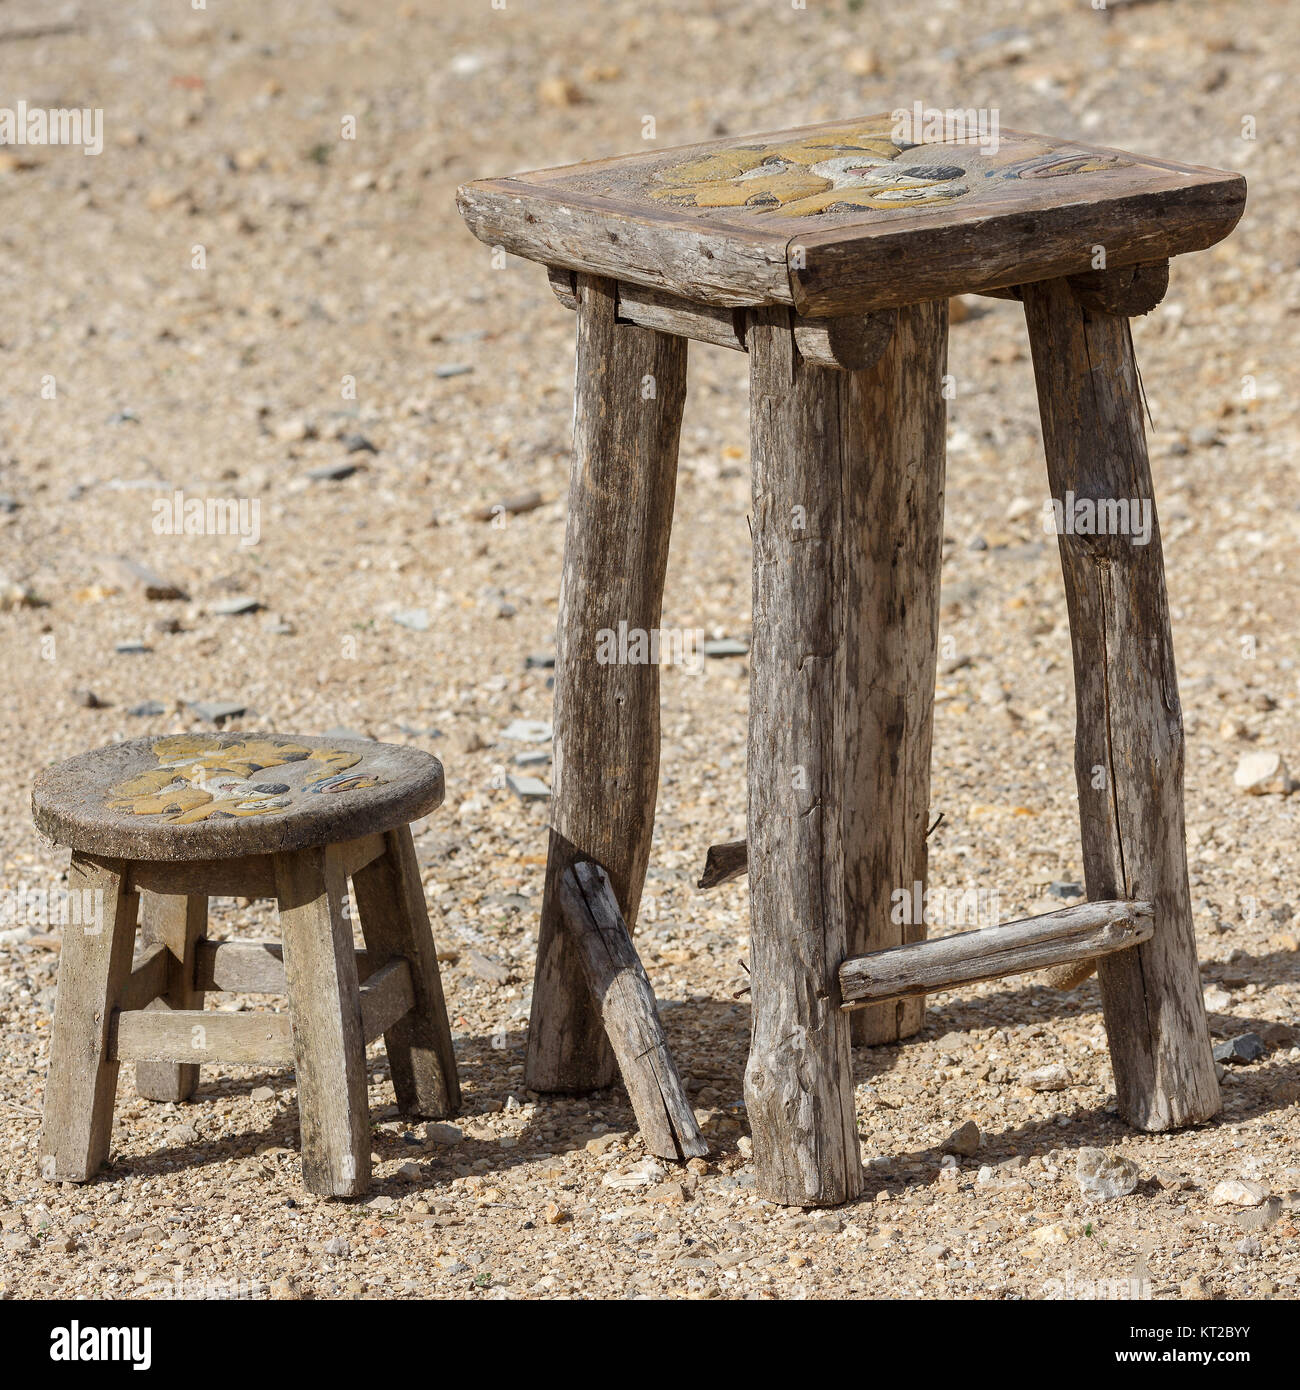 On the street there are two old, dilapidated chairs of handwork - Stock Image